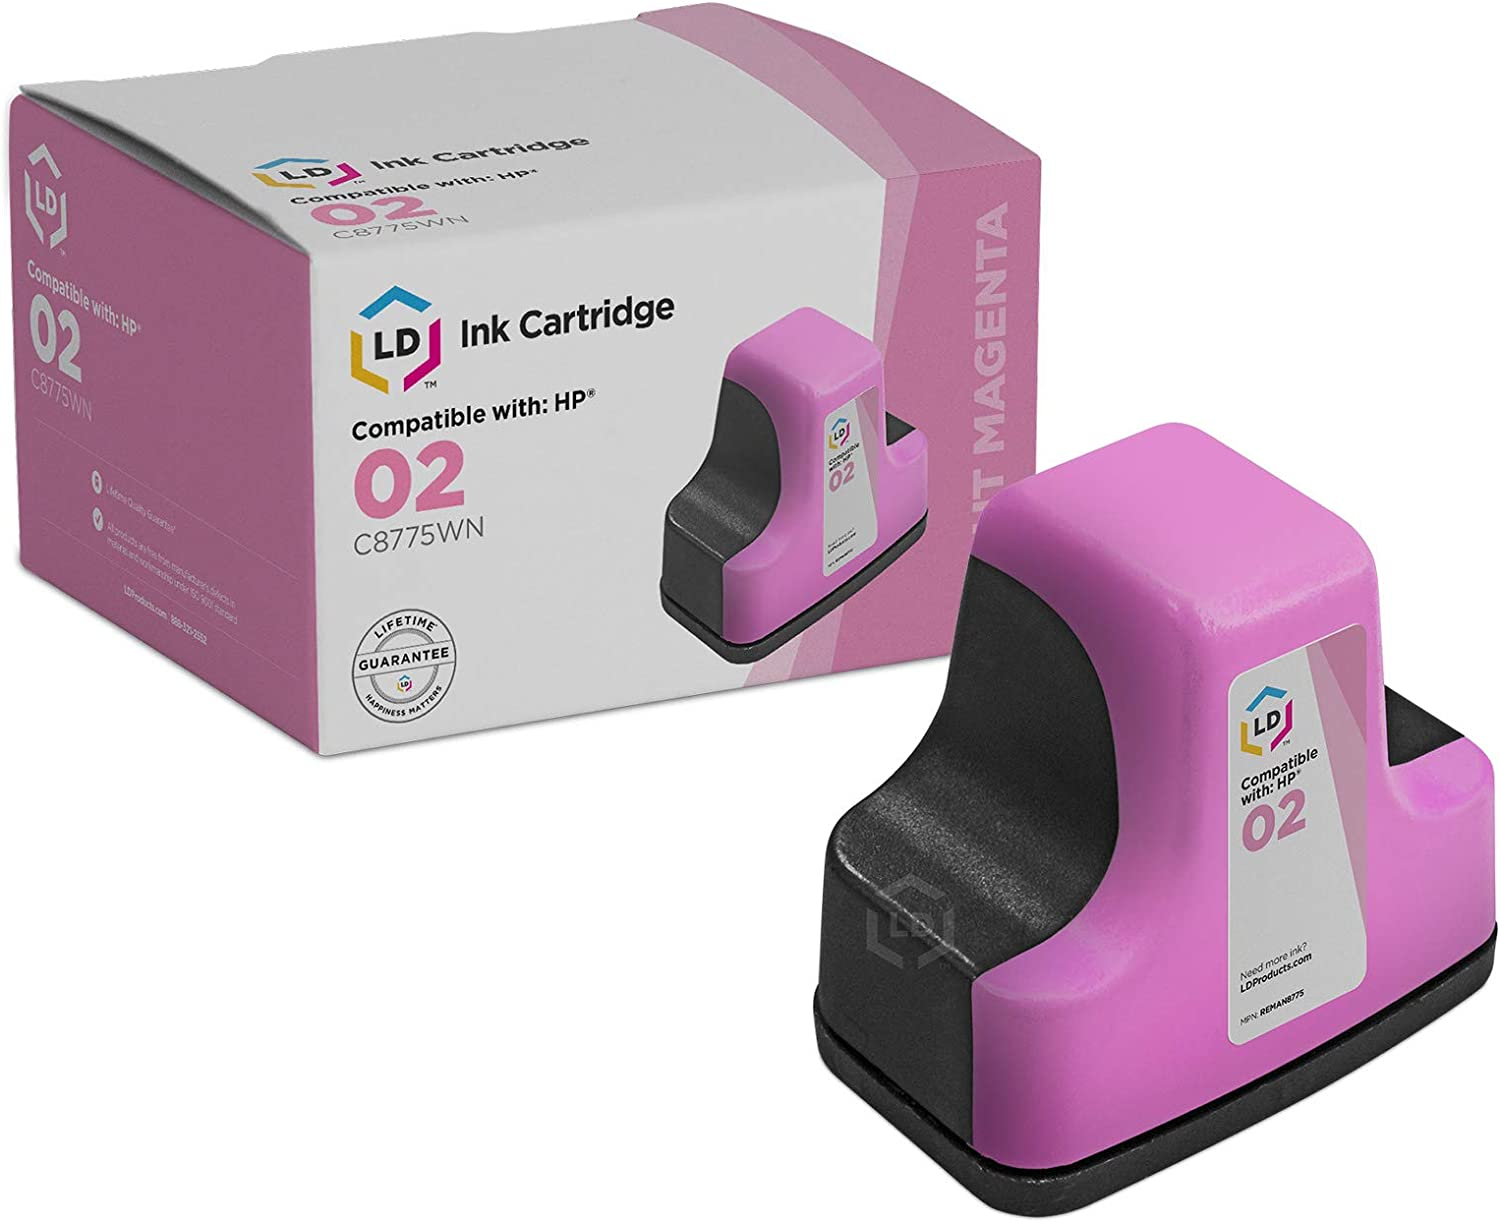 LD © Remanufactured Replacement for HP 02 / C8775WN Light Magenta Ink Cartridge for HP Photosmart Printer Series